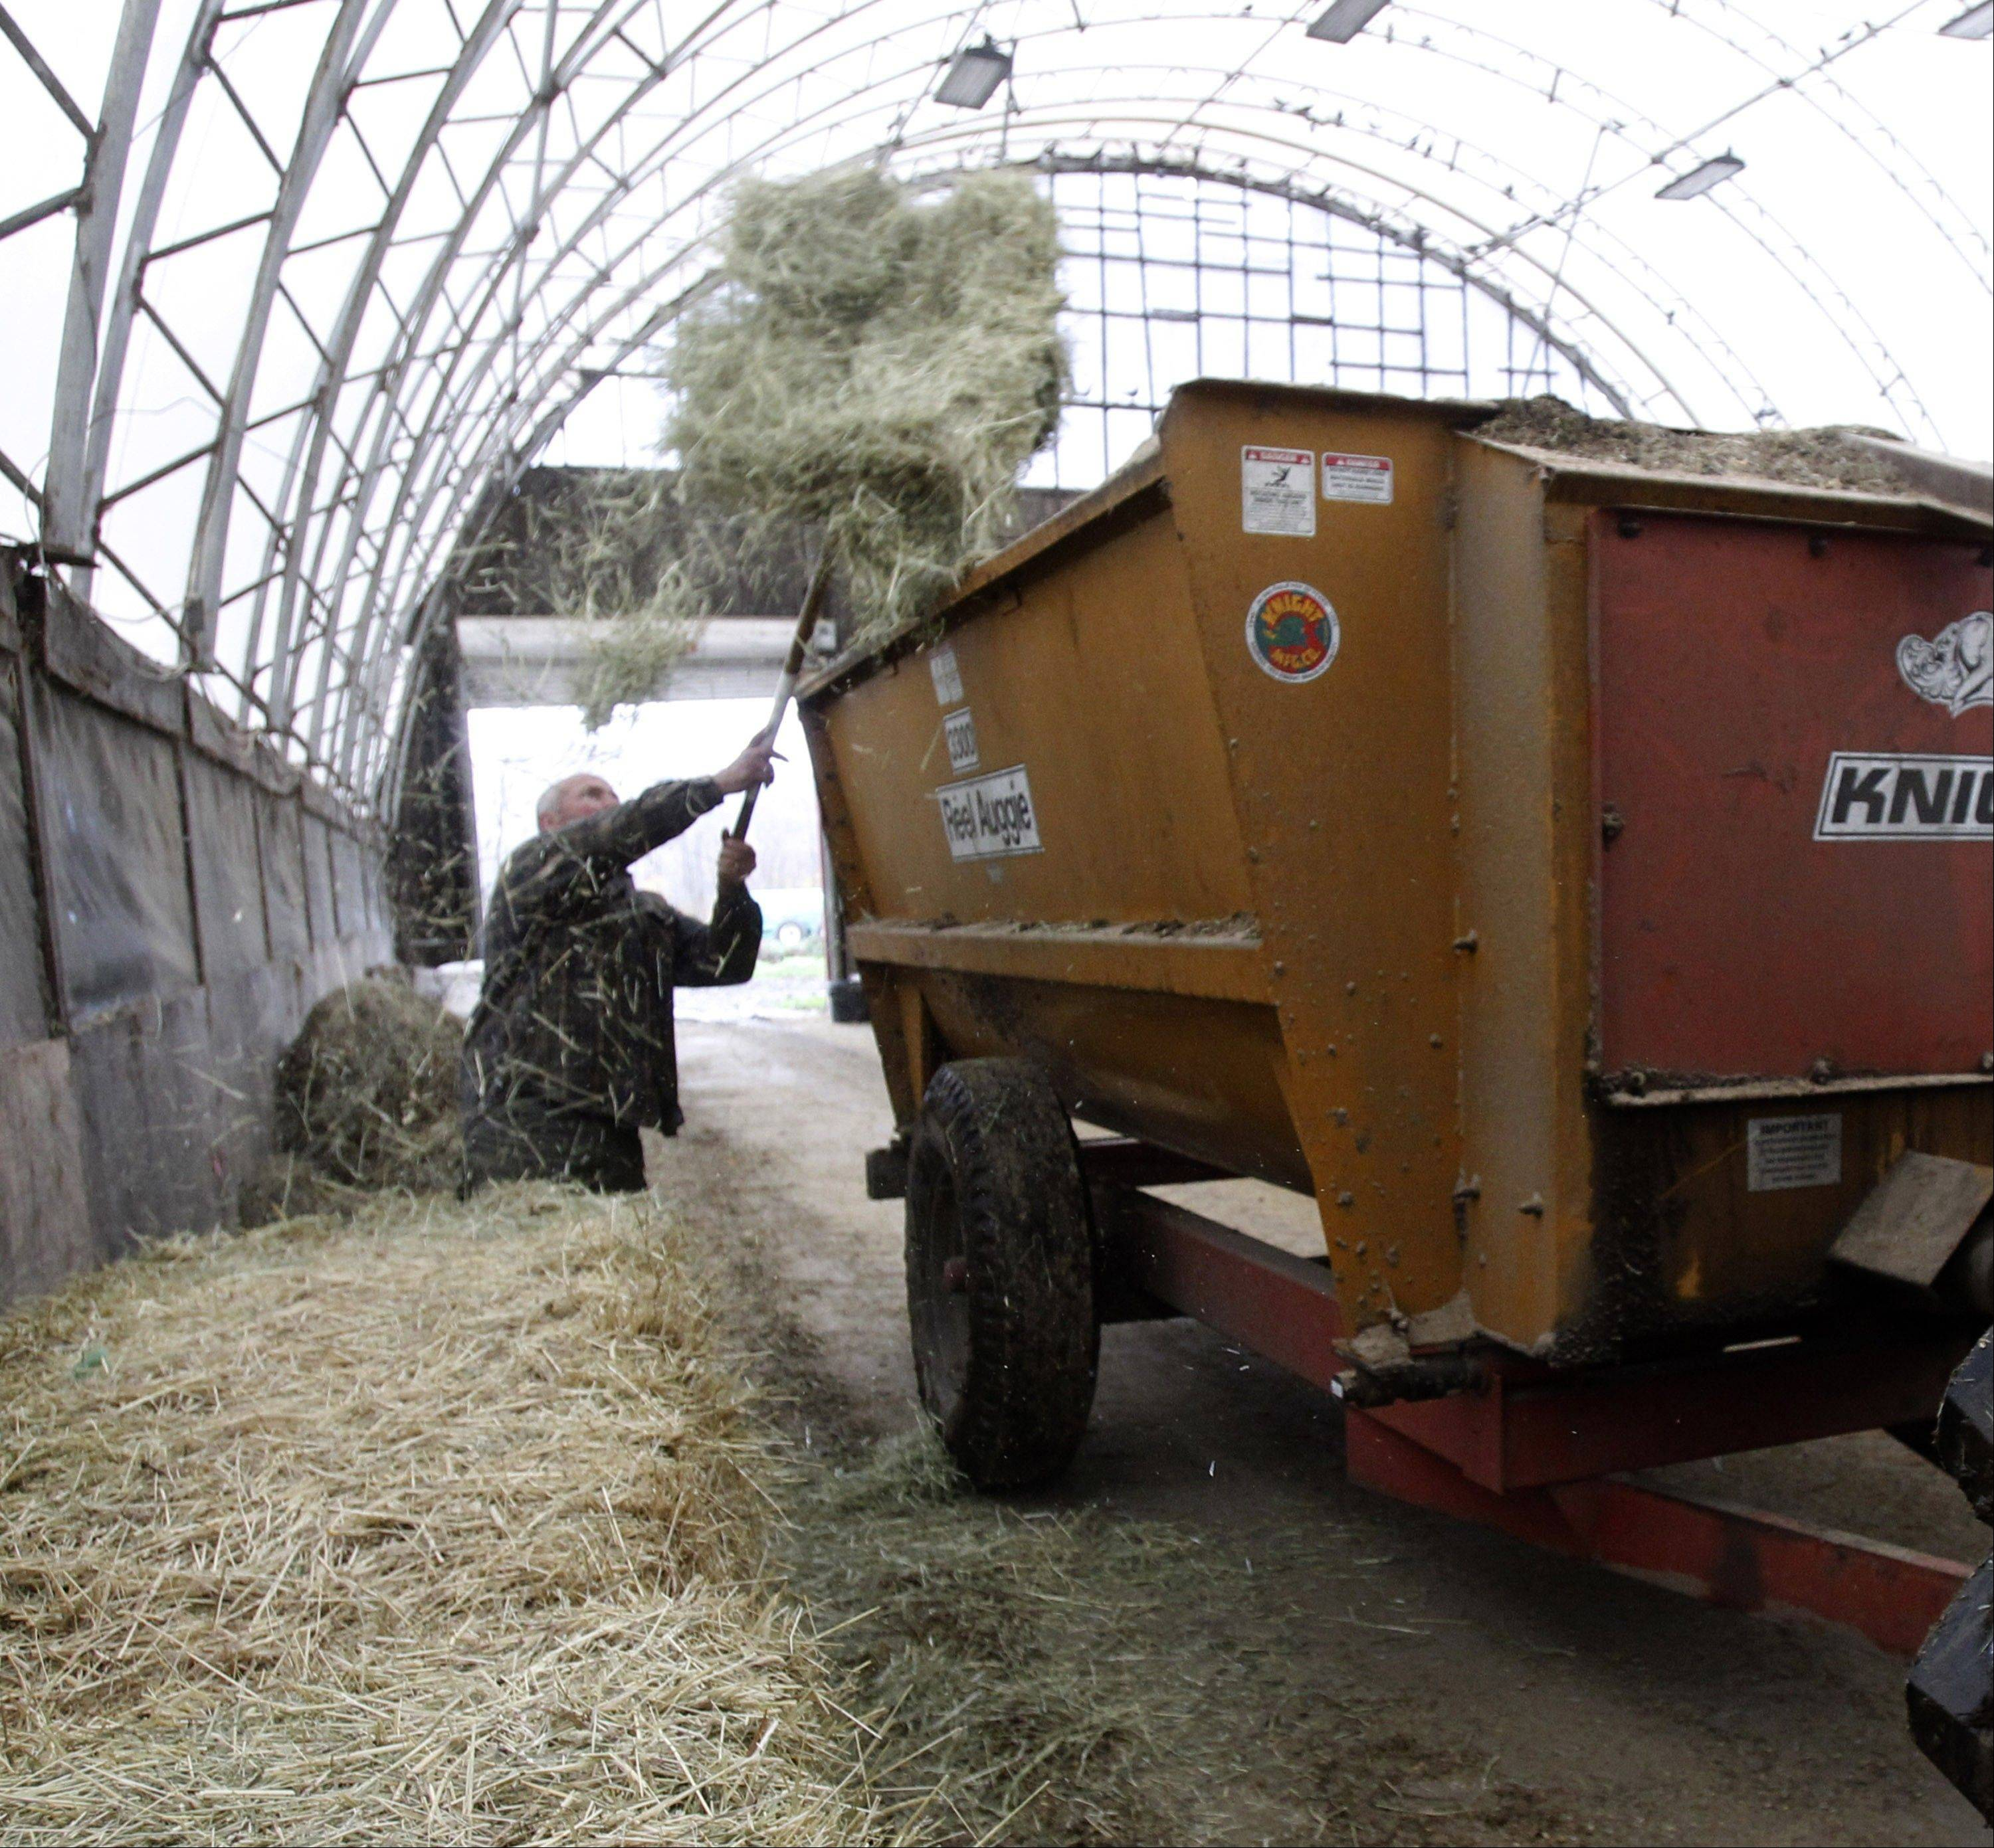 Farmer Myles Goodrich loading a feed wagon at his farm in Danville, Vt. House Republicans have stripped food stamps from the farm bill in an attempt to get the legislation passed after an embarrassing defeat last month.